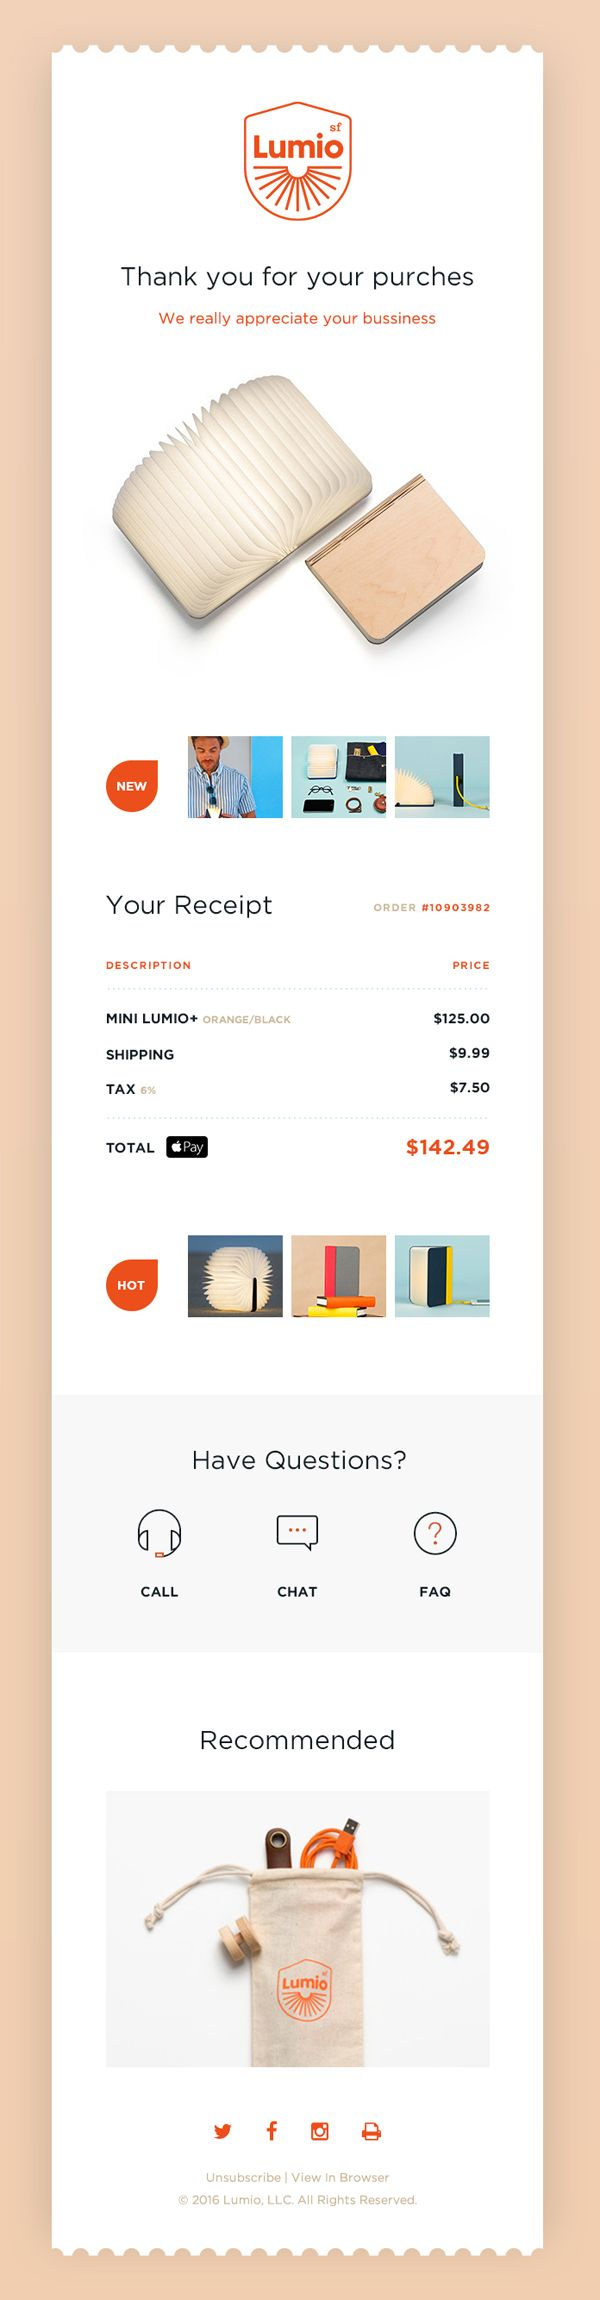 Free Email Receipt Psd Ui Template Design Tools Creative